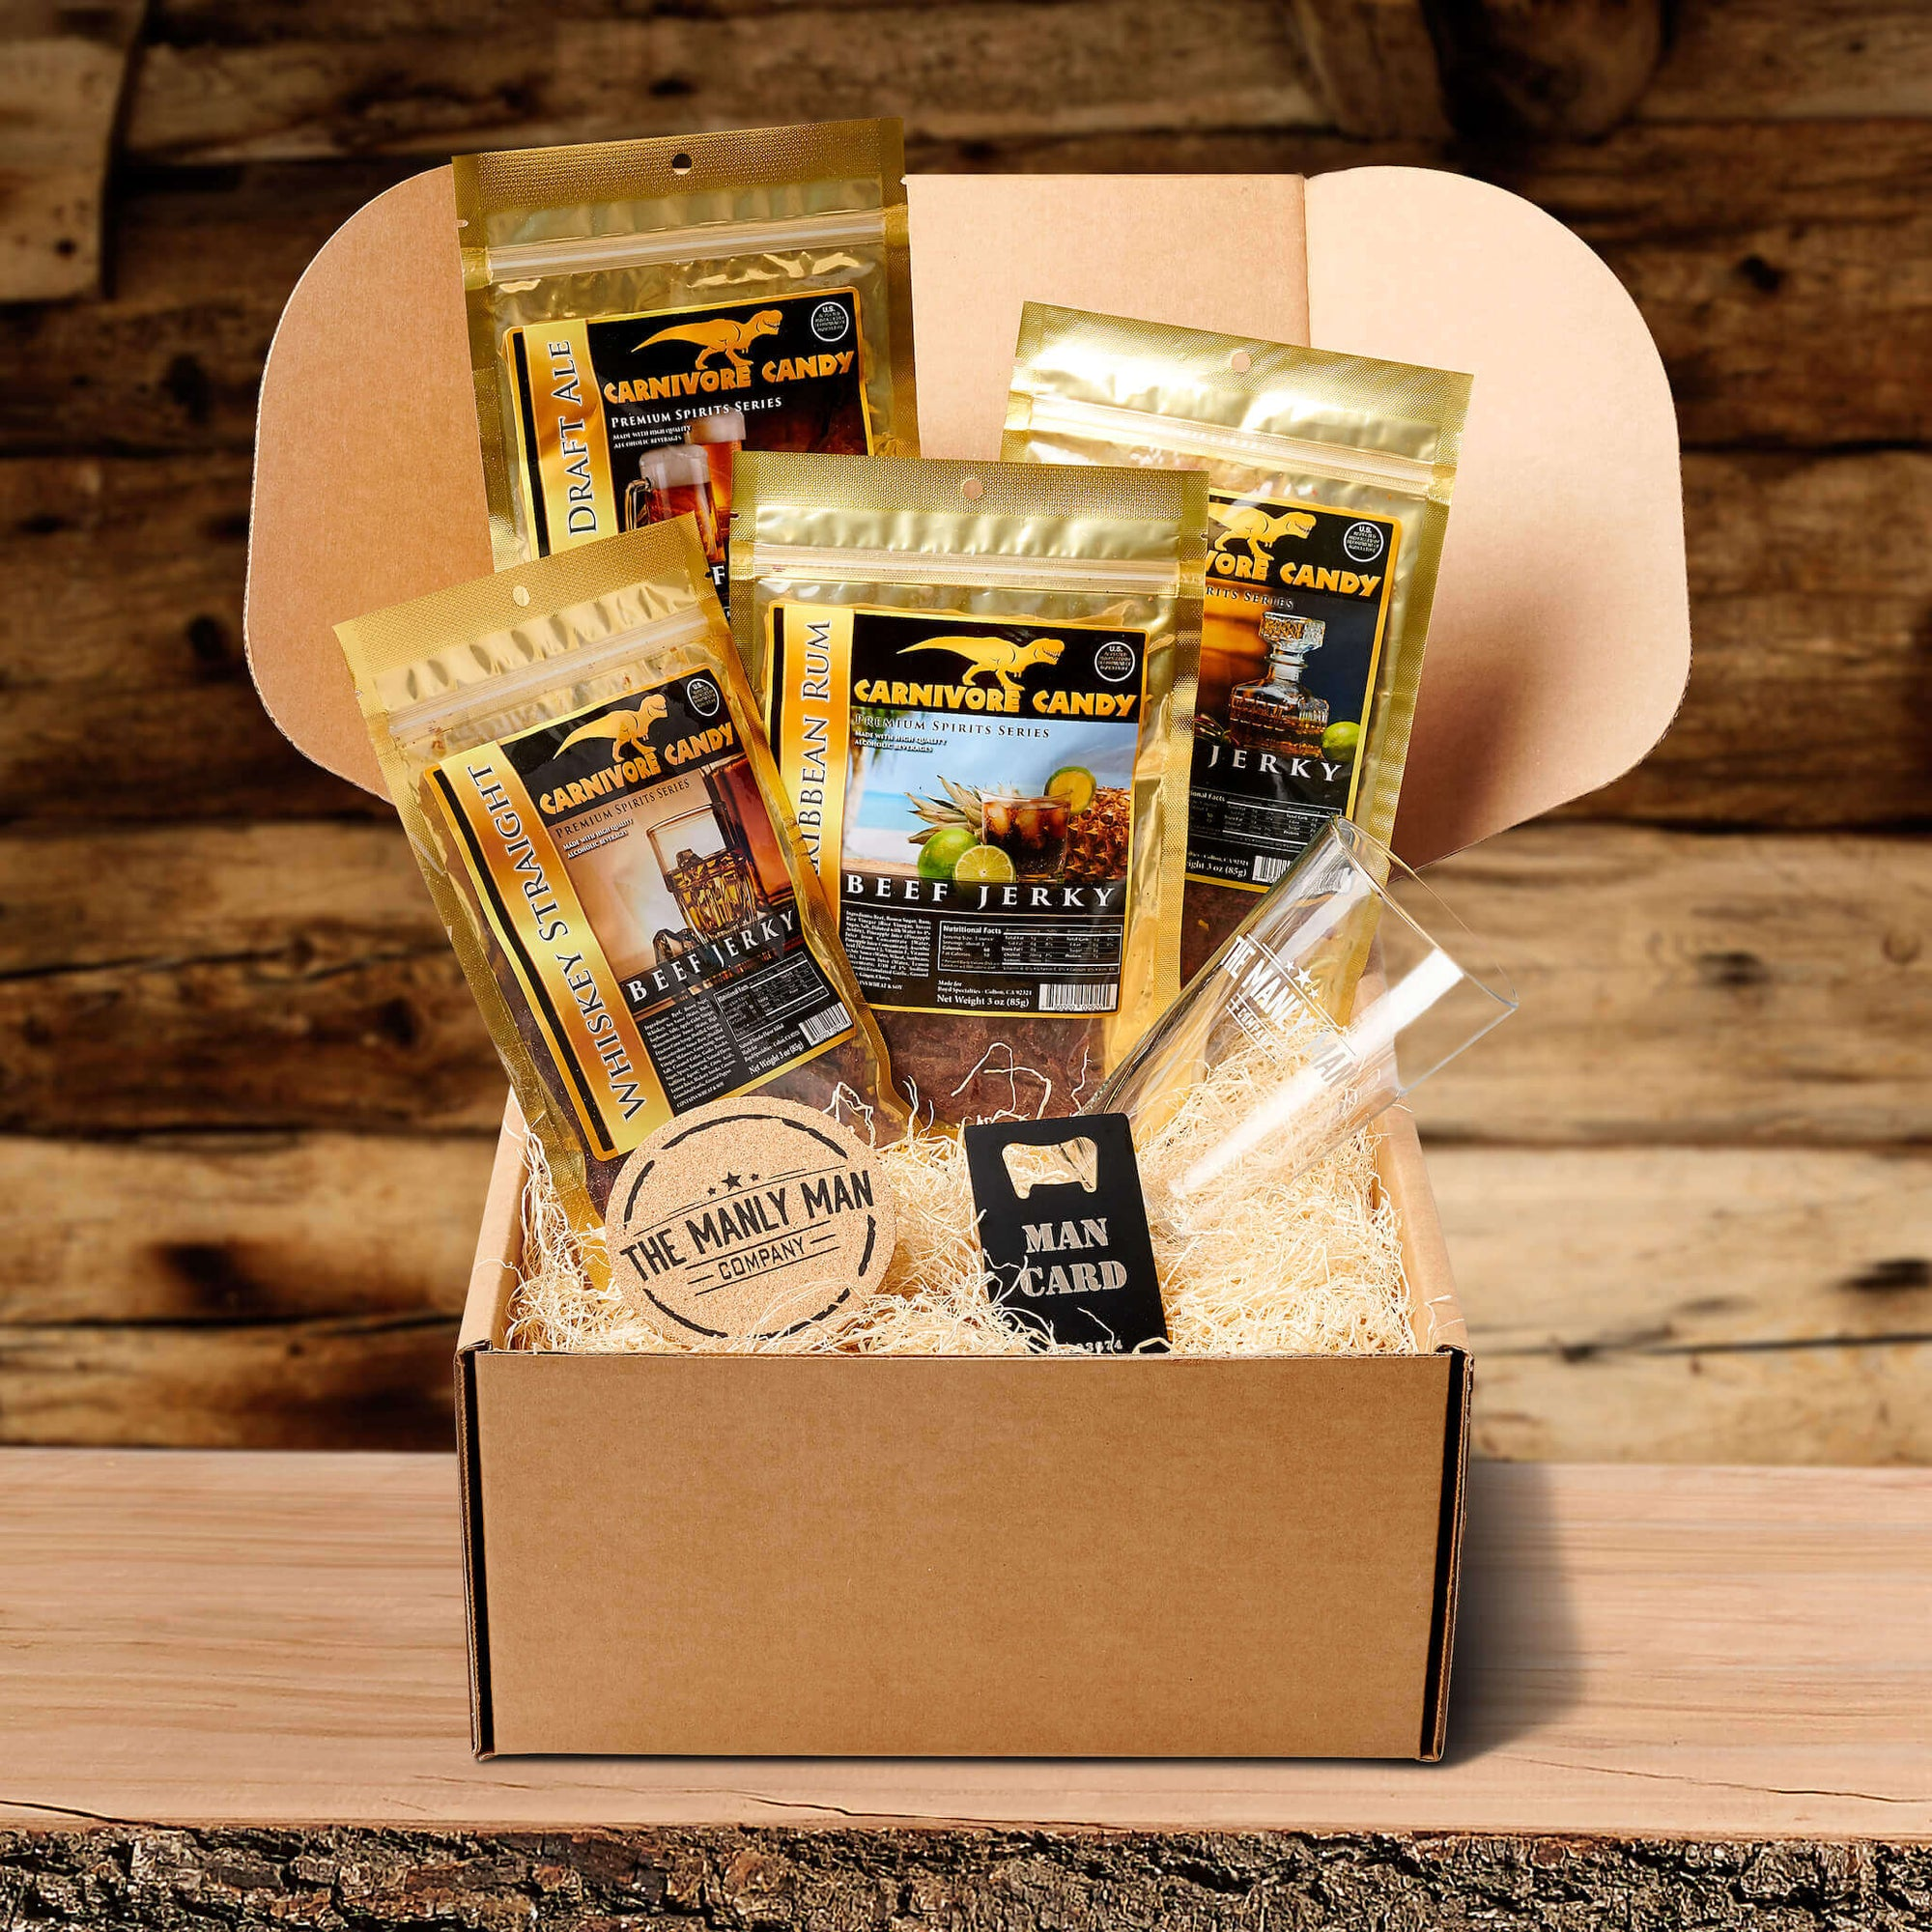 Gift crate for men, filled with alcohol-infused jerky, coaster, pint glass and man card, on log table and in front of wood panel background